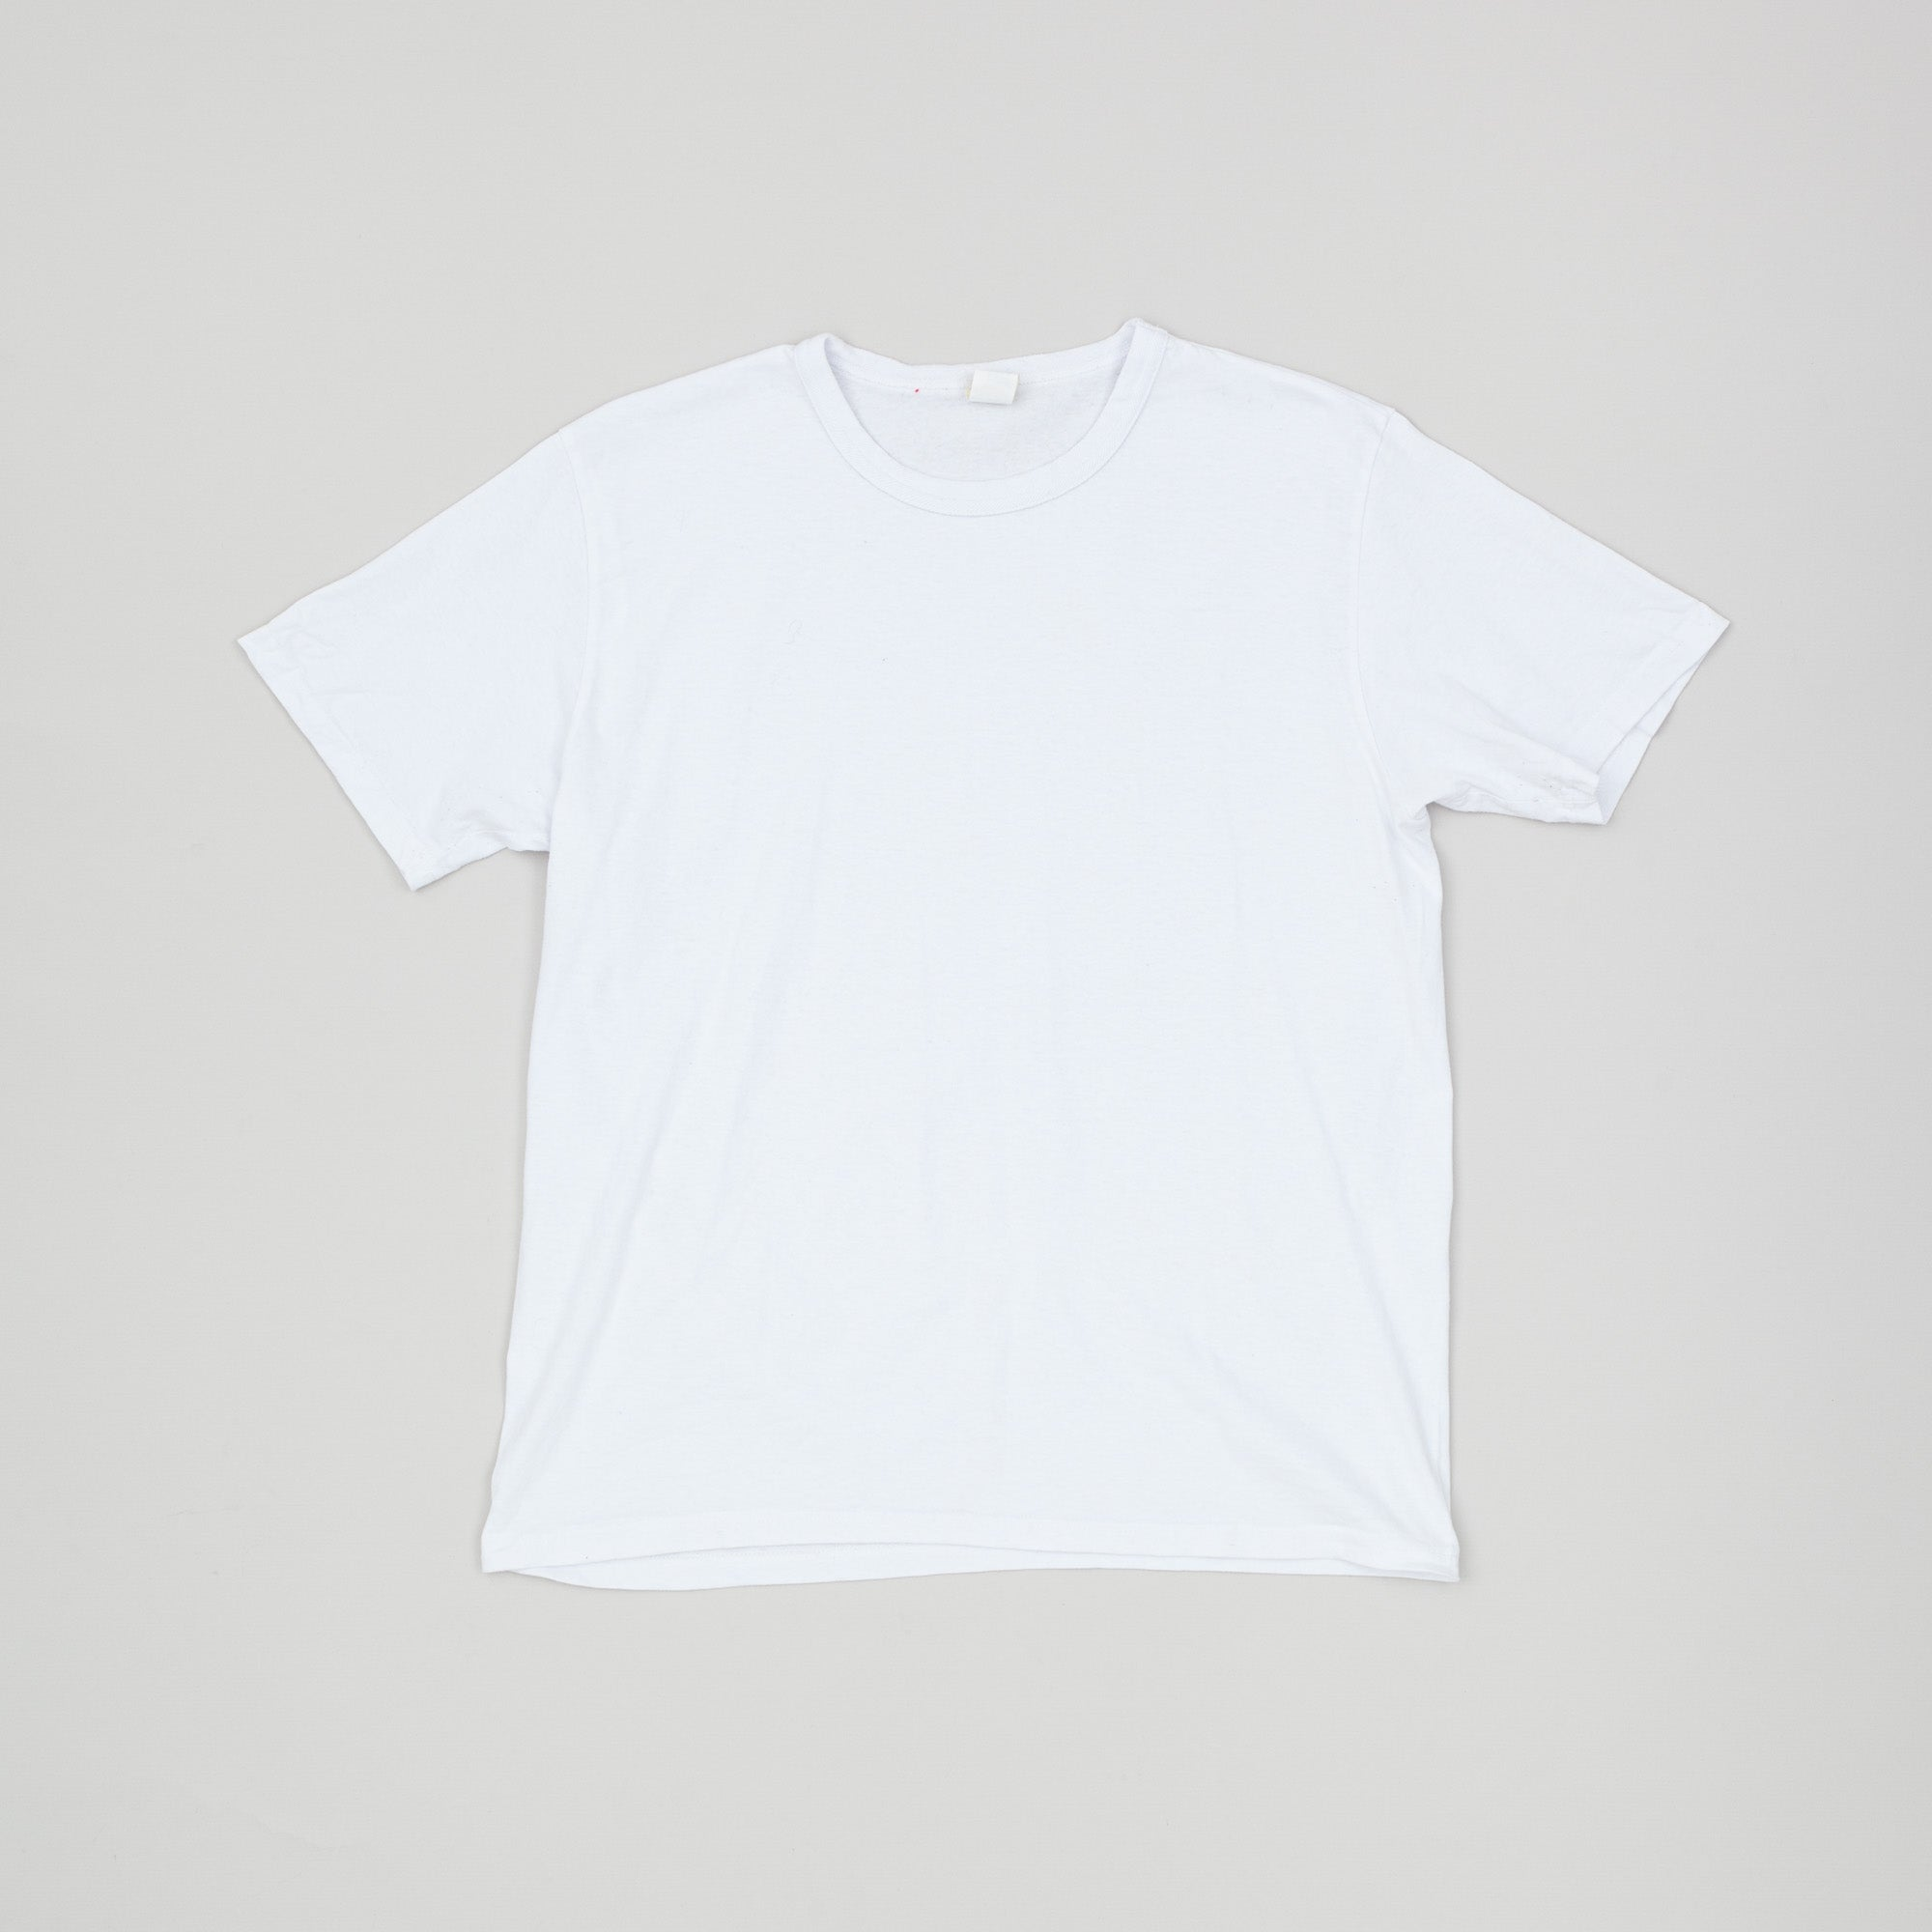 The Real McCoy's Cotton T-Shirt